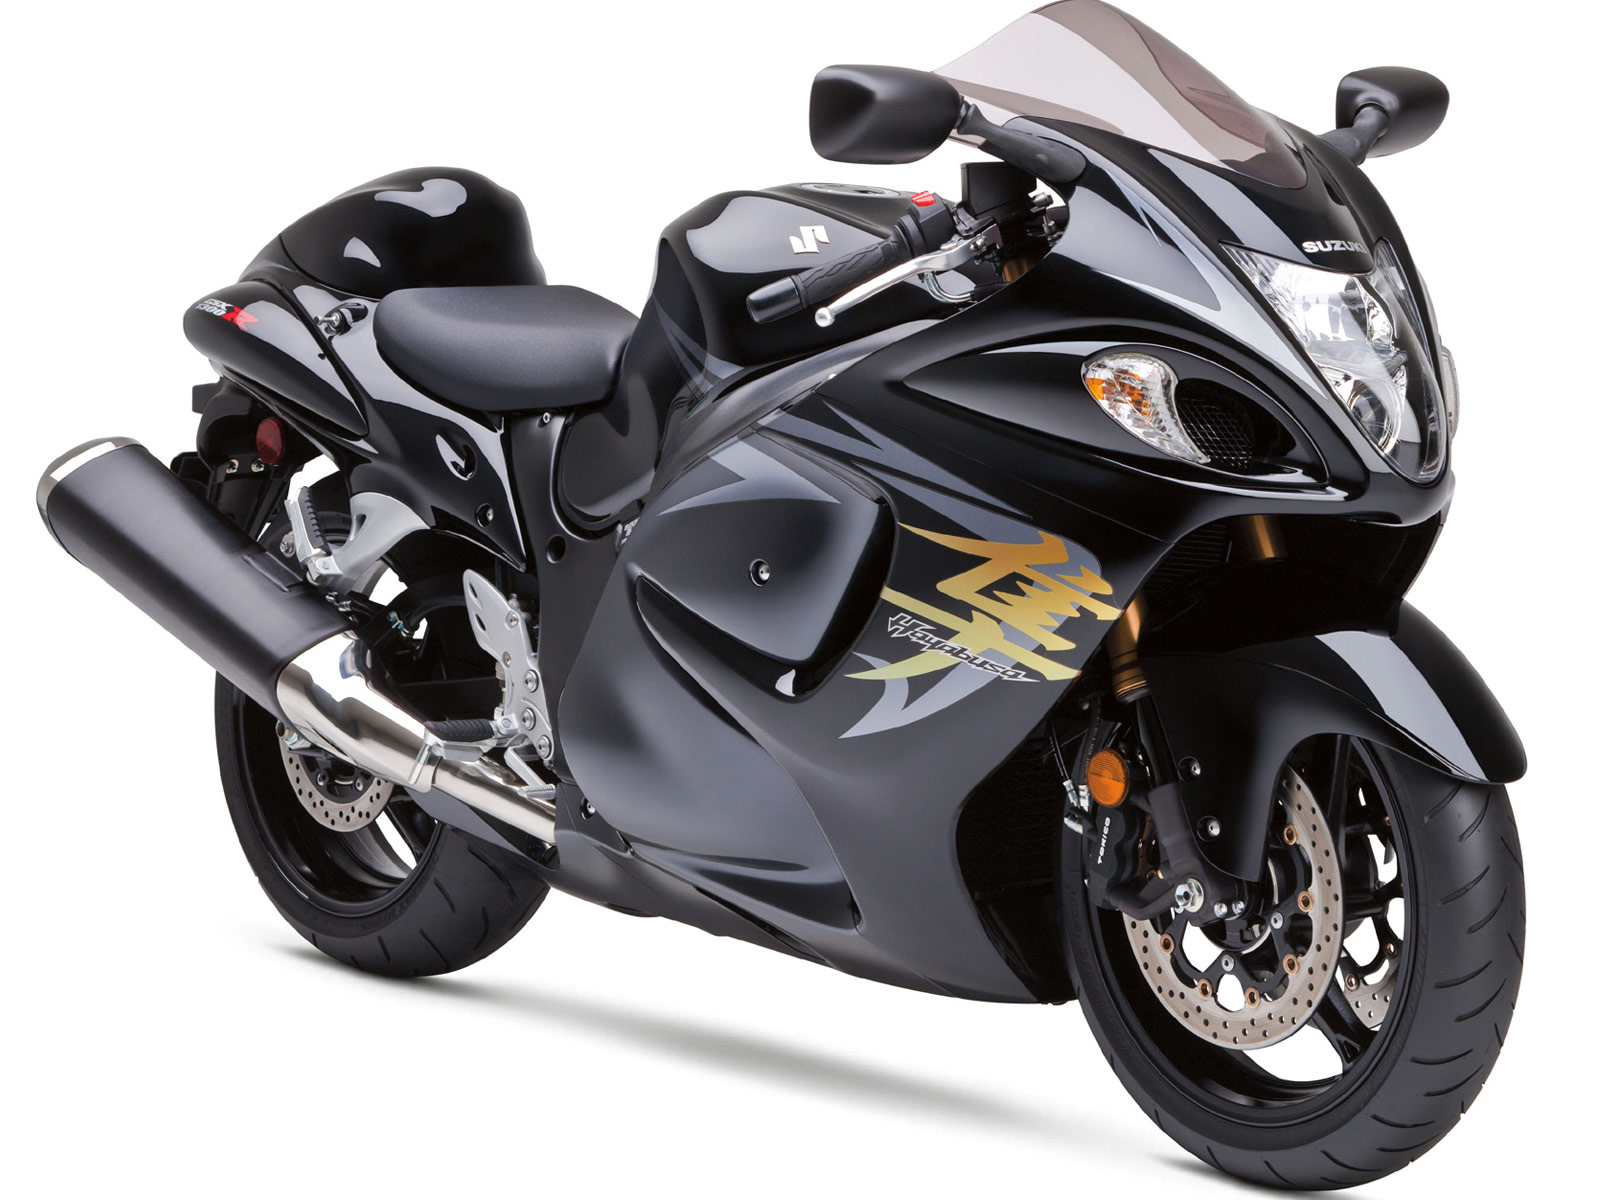 Kawasaki Ninja ZX 14 (299 Km/hr) | TOP FASTEST BIKES IN THE WORLD |  Pinterest | Kawasaki Ninja, Ducati 1098s And Suzuki Hayabusa